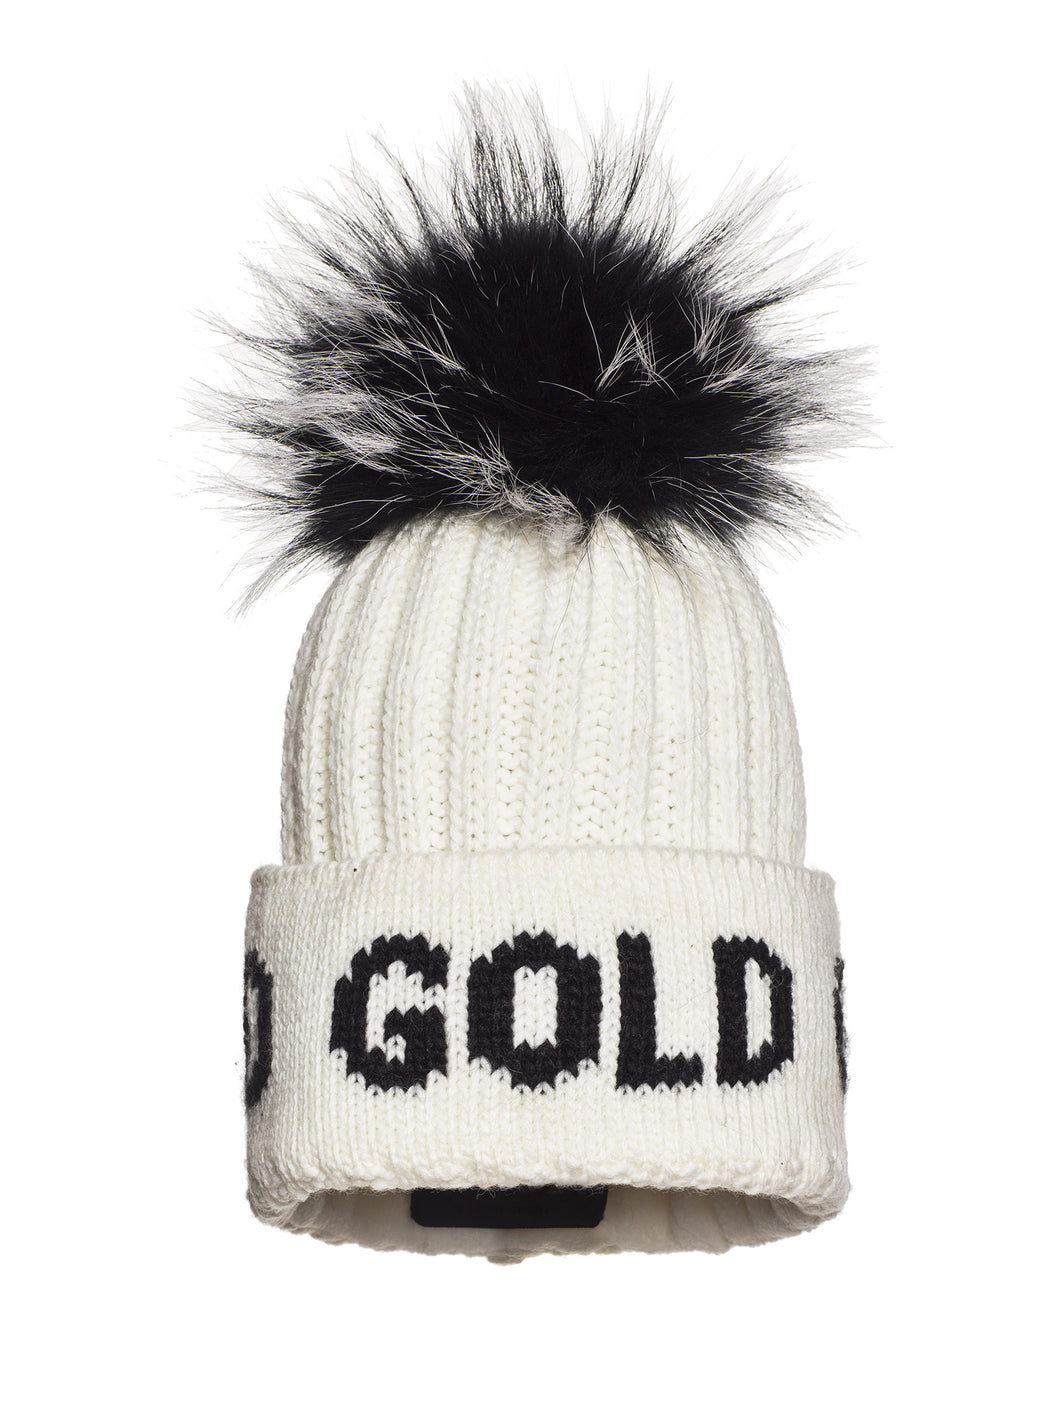 Hodd, knitsted hat Real Raccoon Fur - White